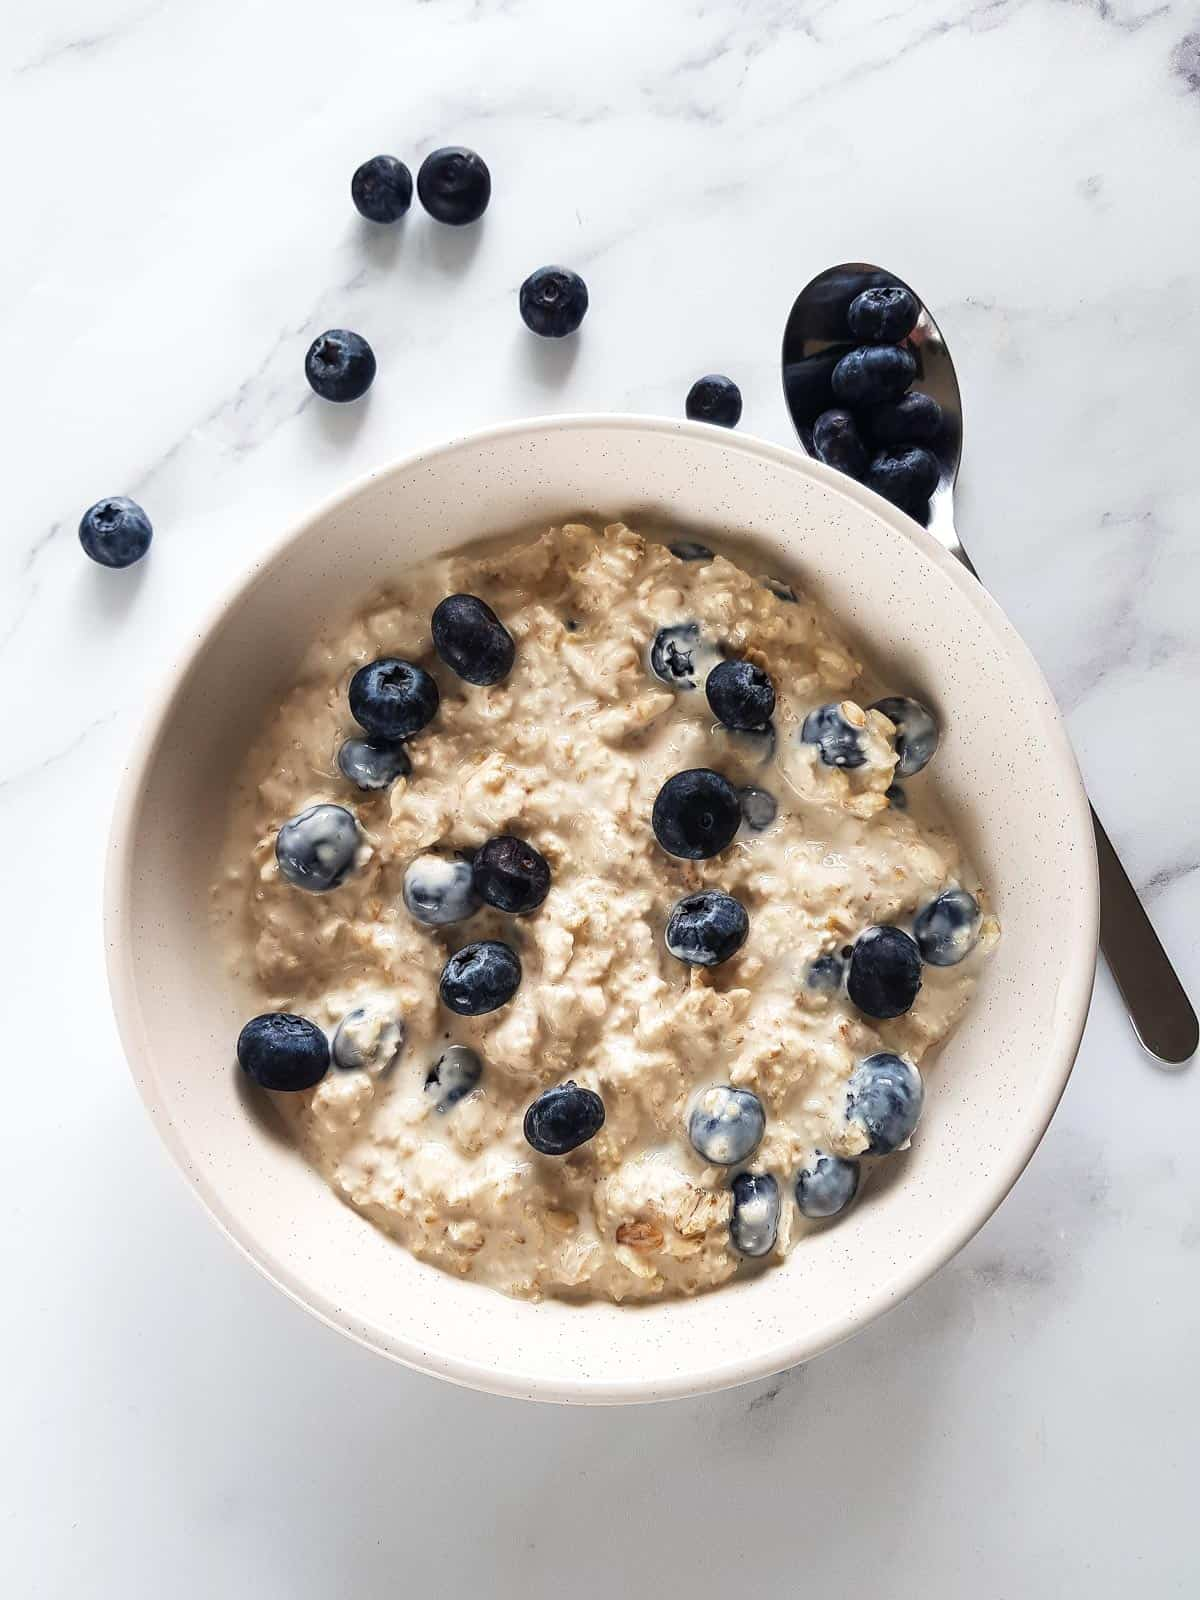 Creamy overnight oats with blueberries.